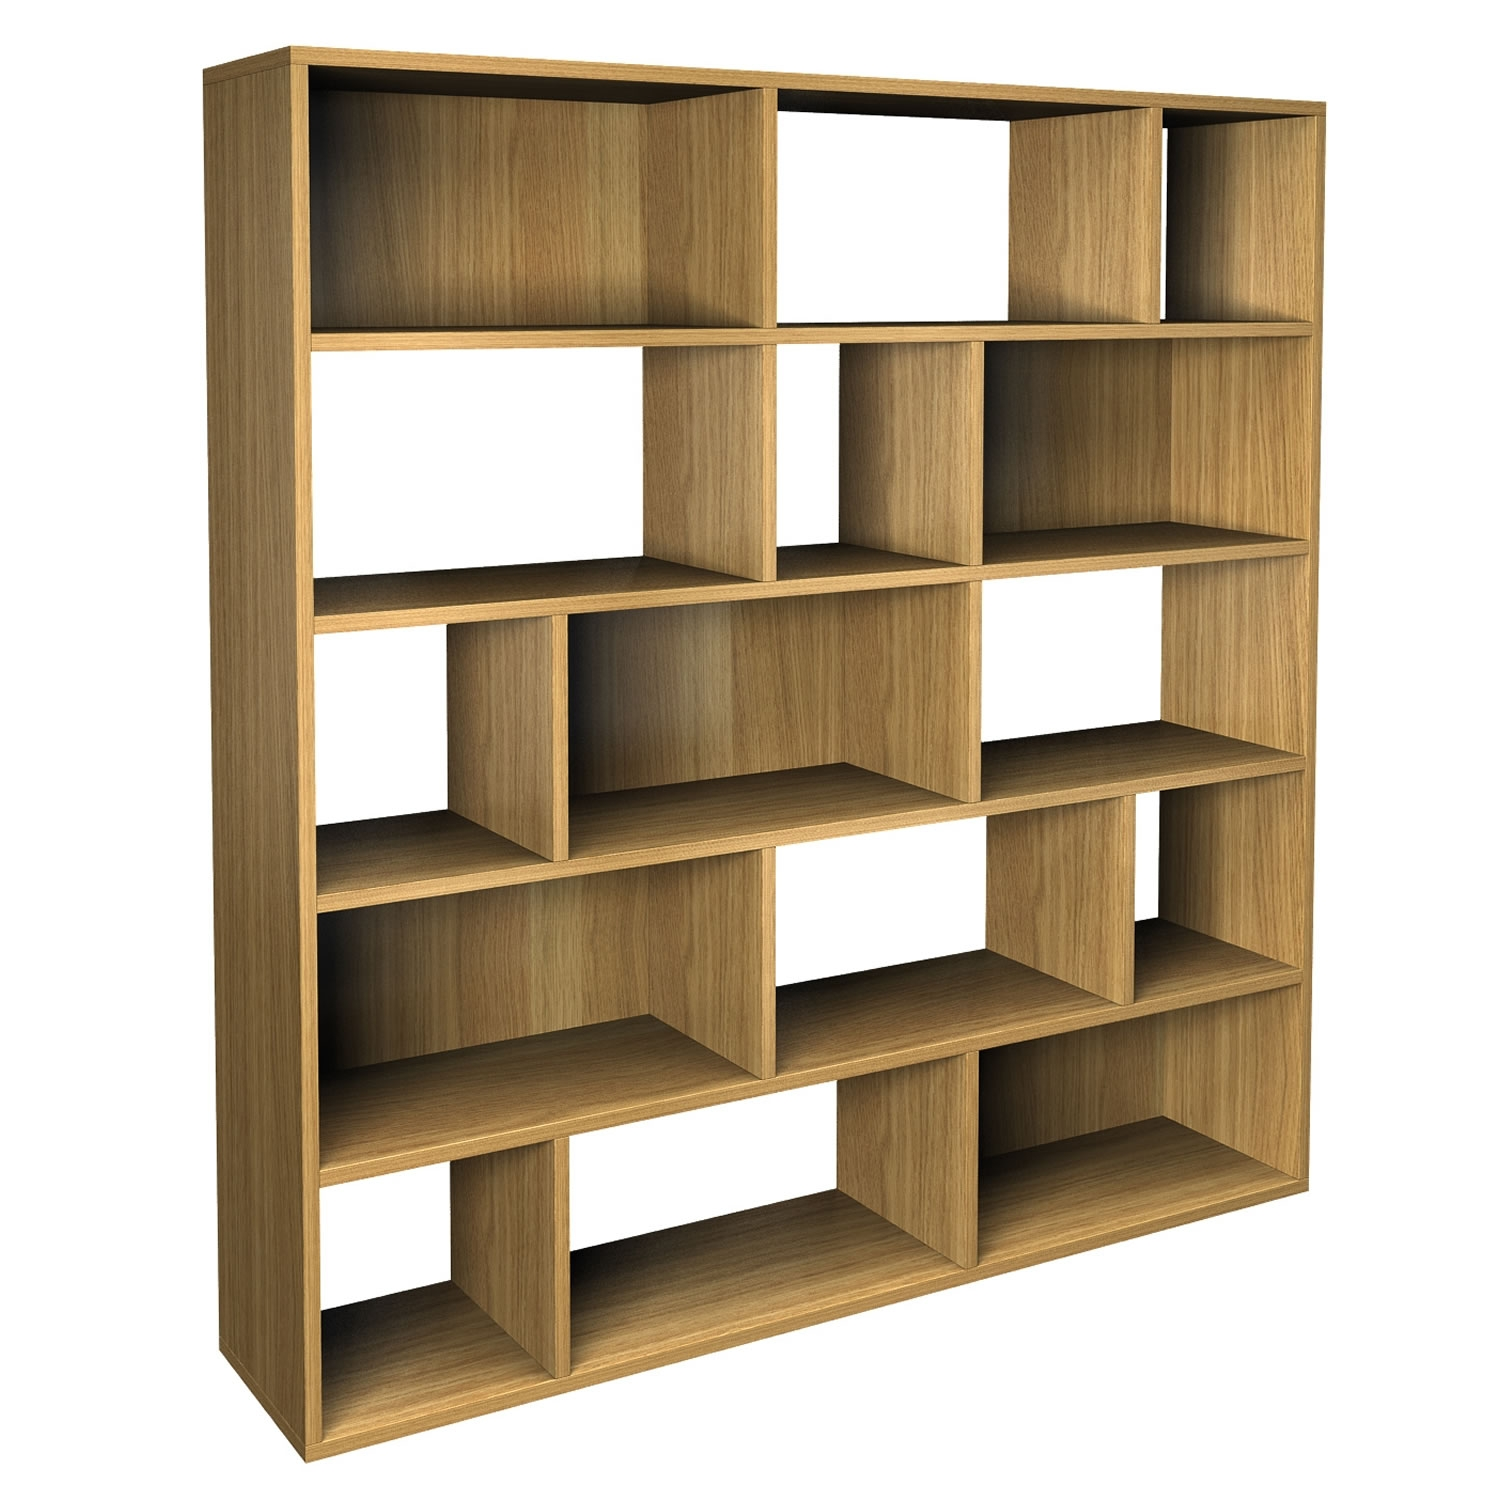 Furniture Simple Stylish Designs Pictures Of Creative Bookshelf With Regard To Bookshelves Designs For Home (View 11 of 15)